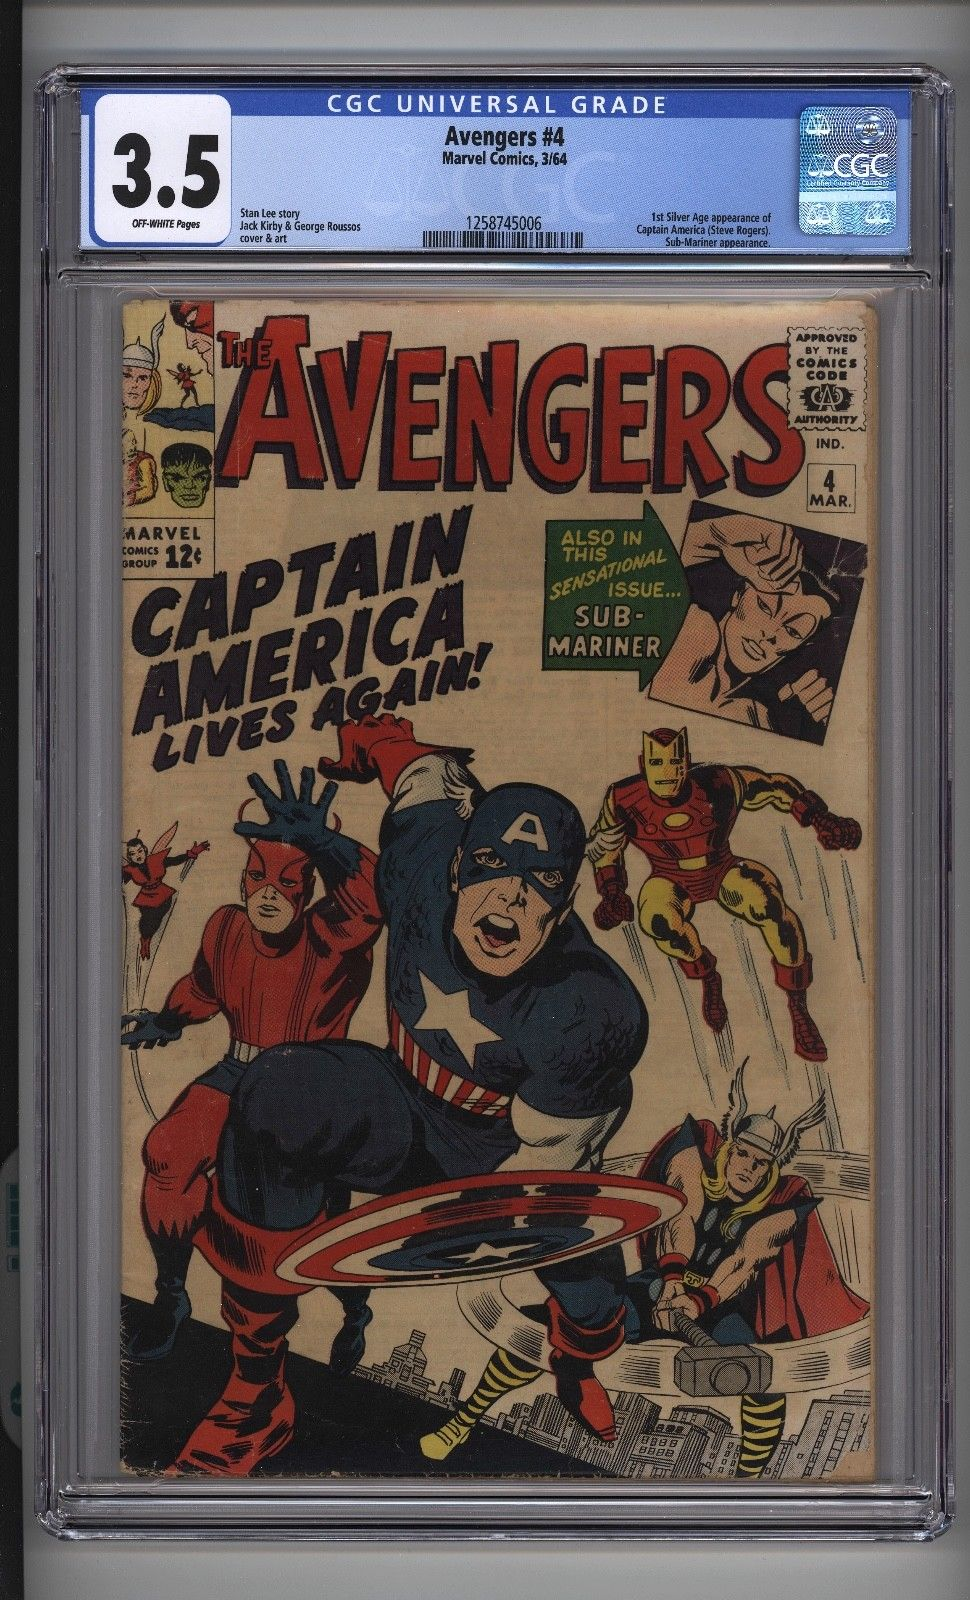 AVENGERS #4 CGC 3.5 Off White Pages Kirby Art 1st Silver Age Captain America